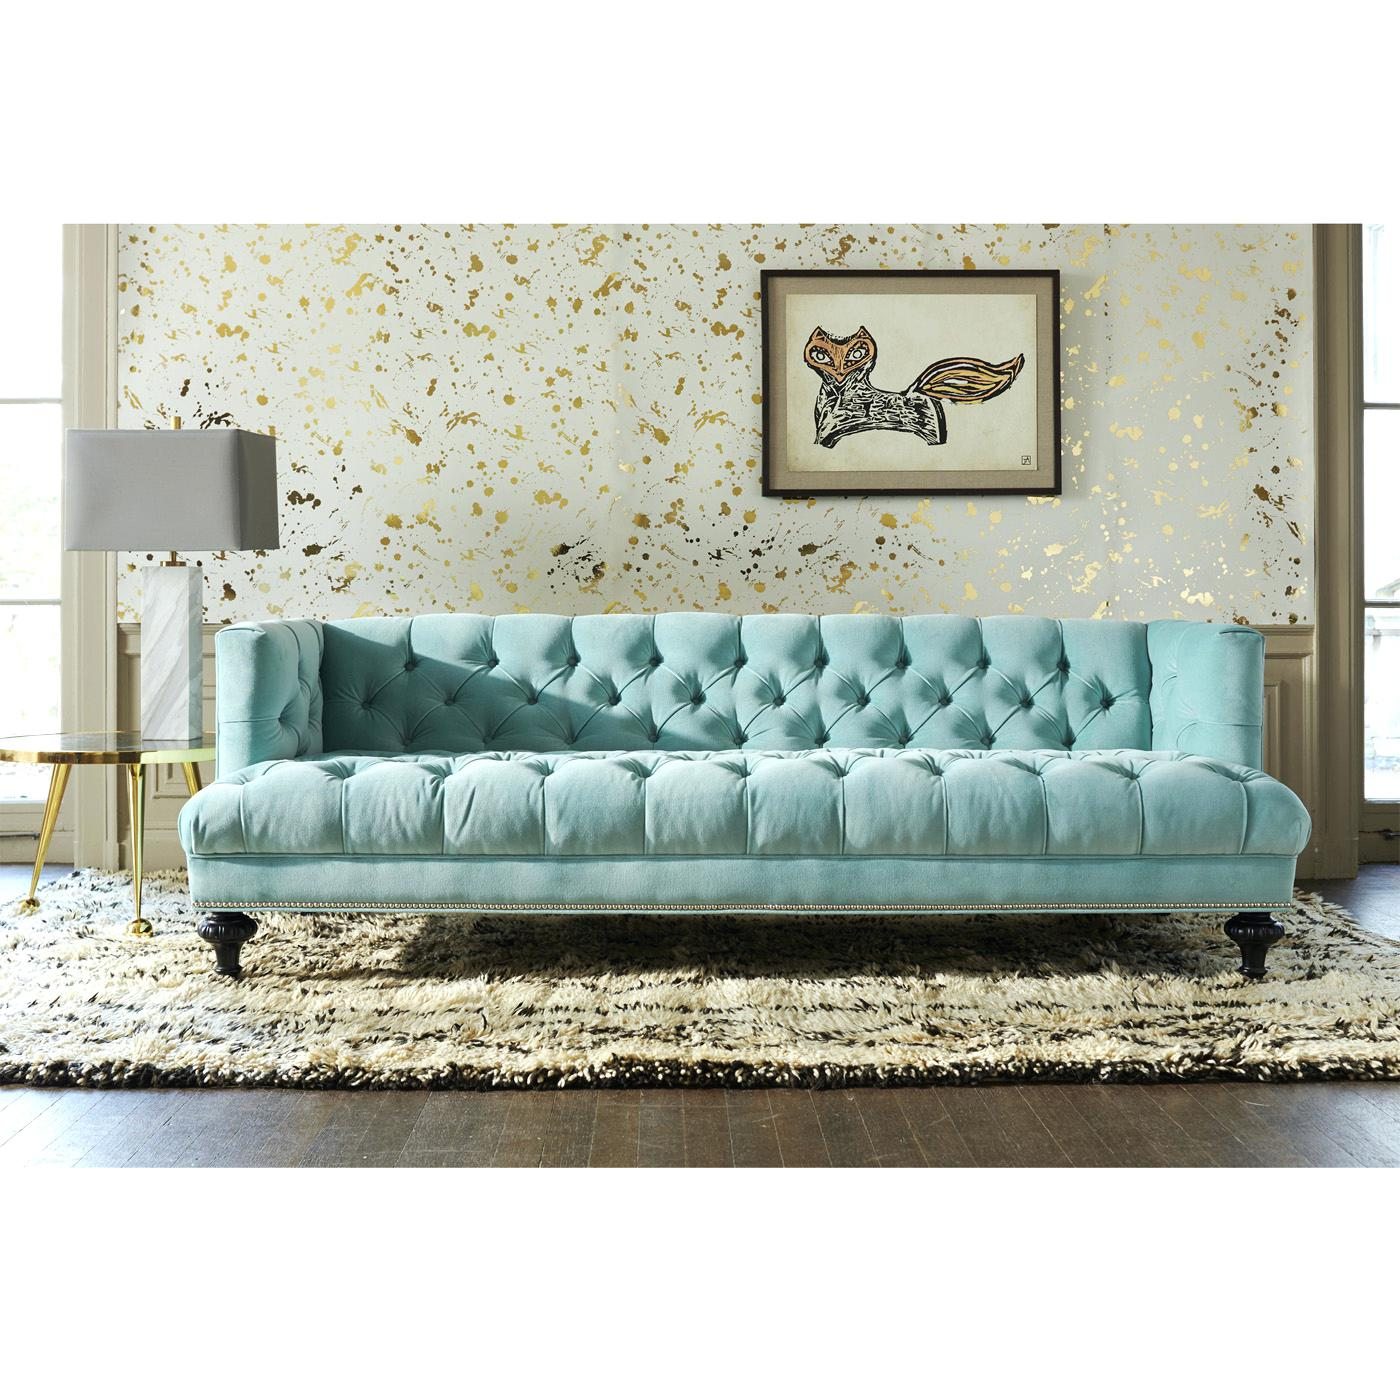 Wood Bed Risers Home Depot   Couch Legs Lowes   Replacement Sofa Legs. Ideas  Sofa Leg   Folding Table Legs Lowes   Replacement Sofa Legs